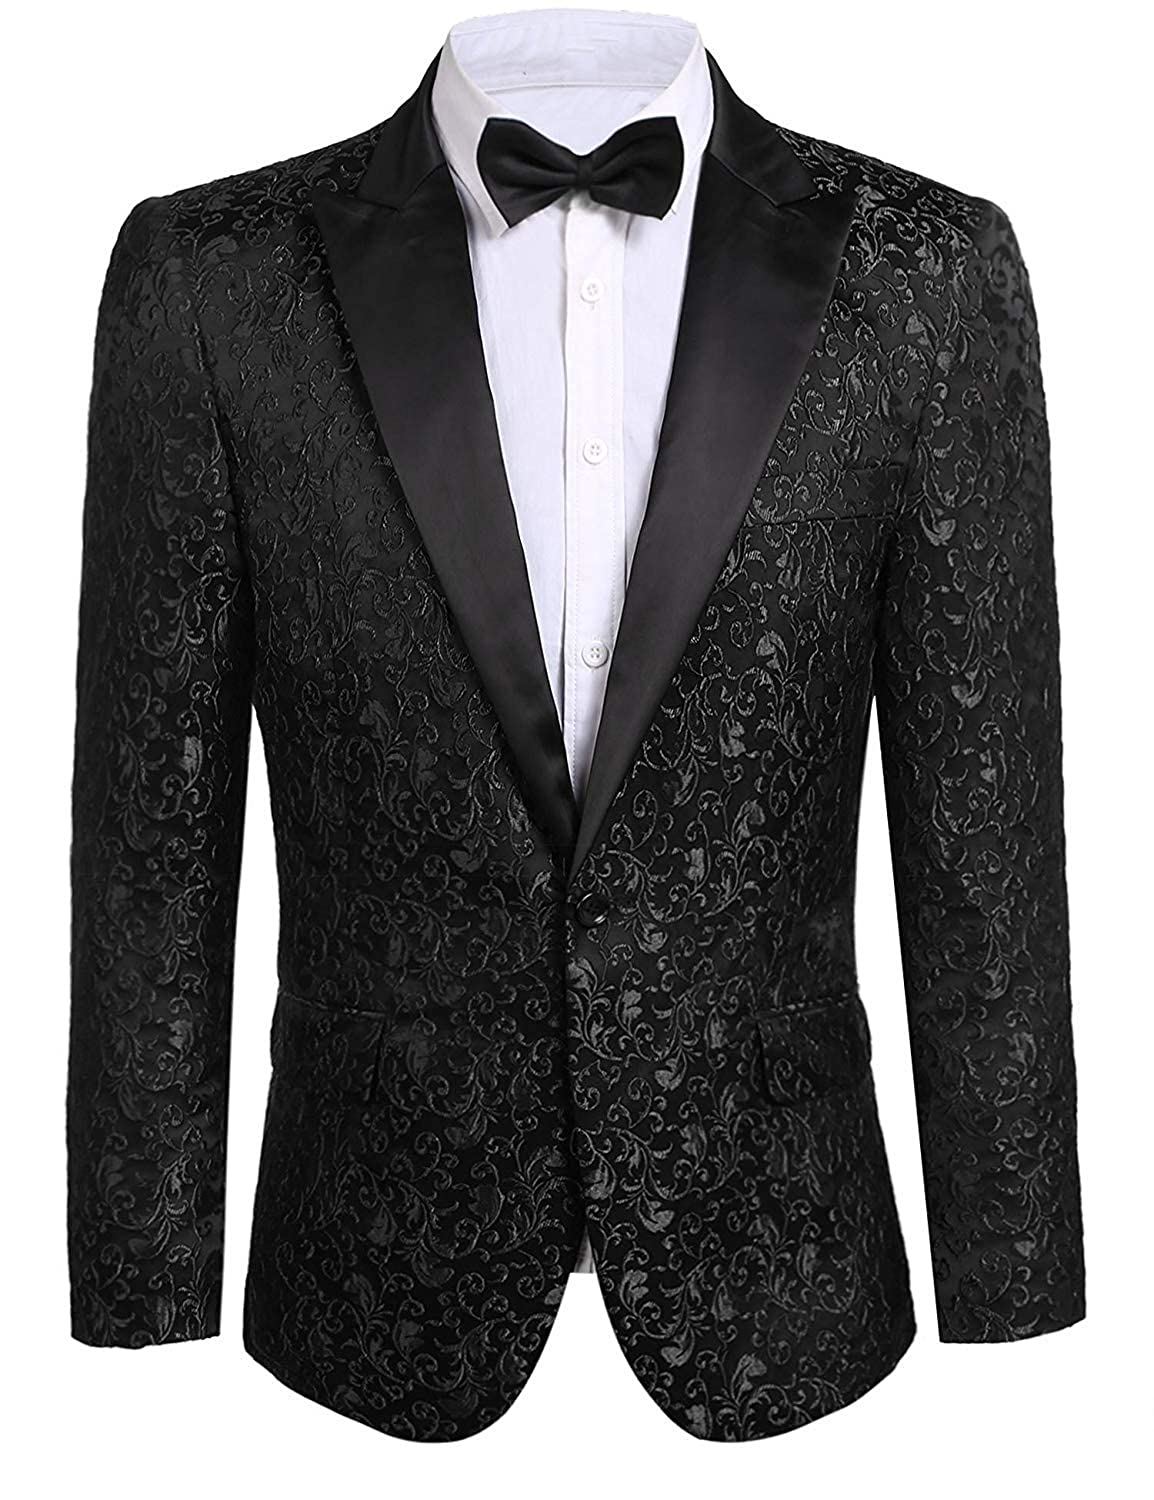 e71cb910c268 DGMJ Men Floral Suit Jackets for Wedding Slim Fit Tuxedo One Button Party  Formal Dinner Blazer XZ015 at Amazon Men's Clothing store: